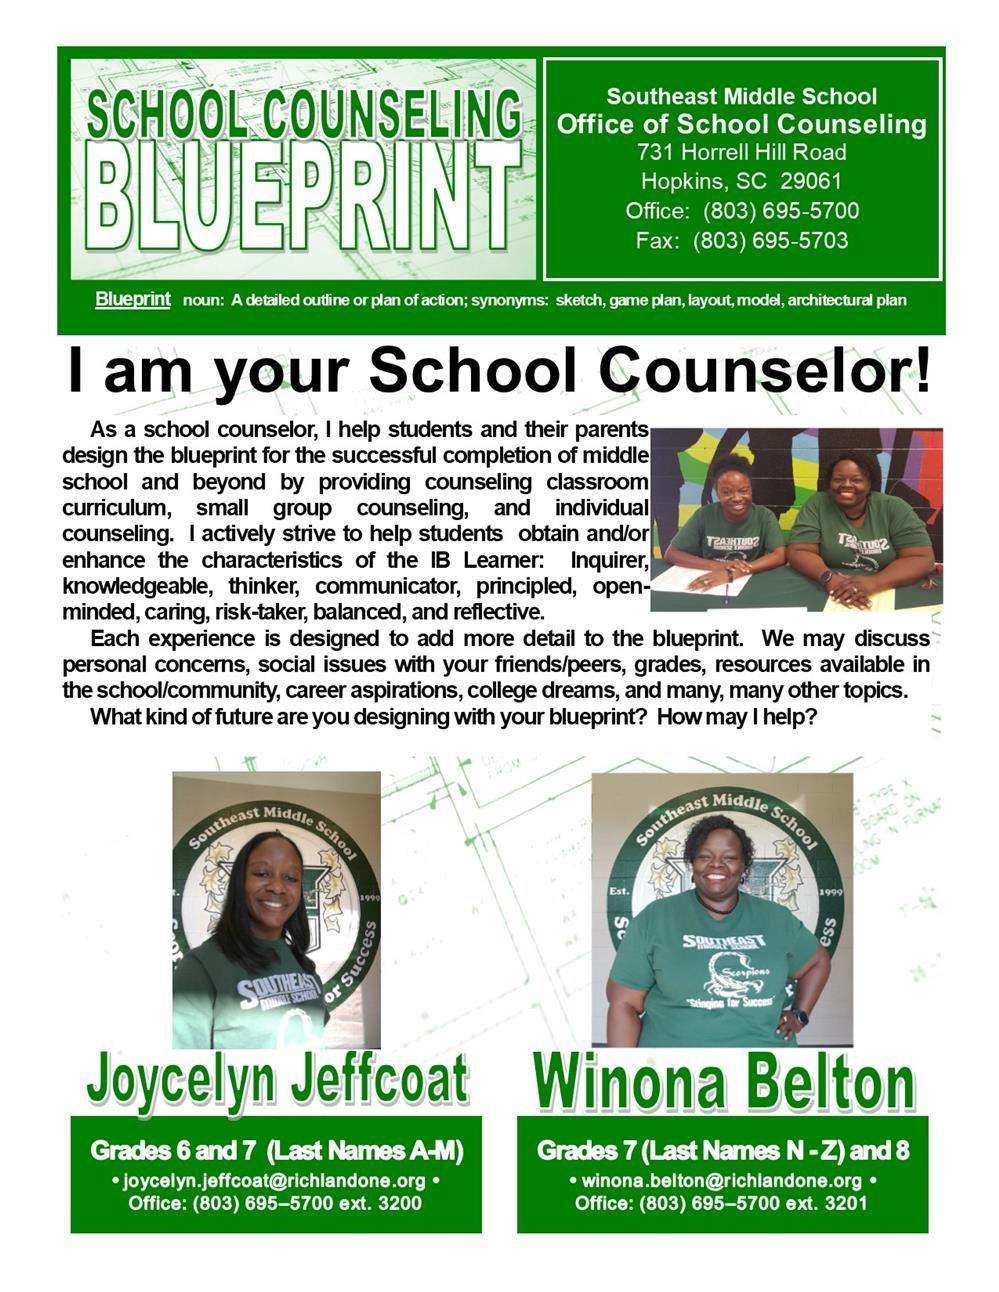 School Counseling Blueprint